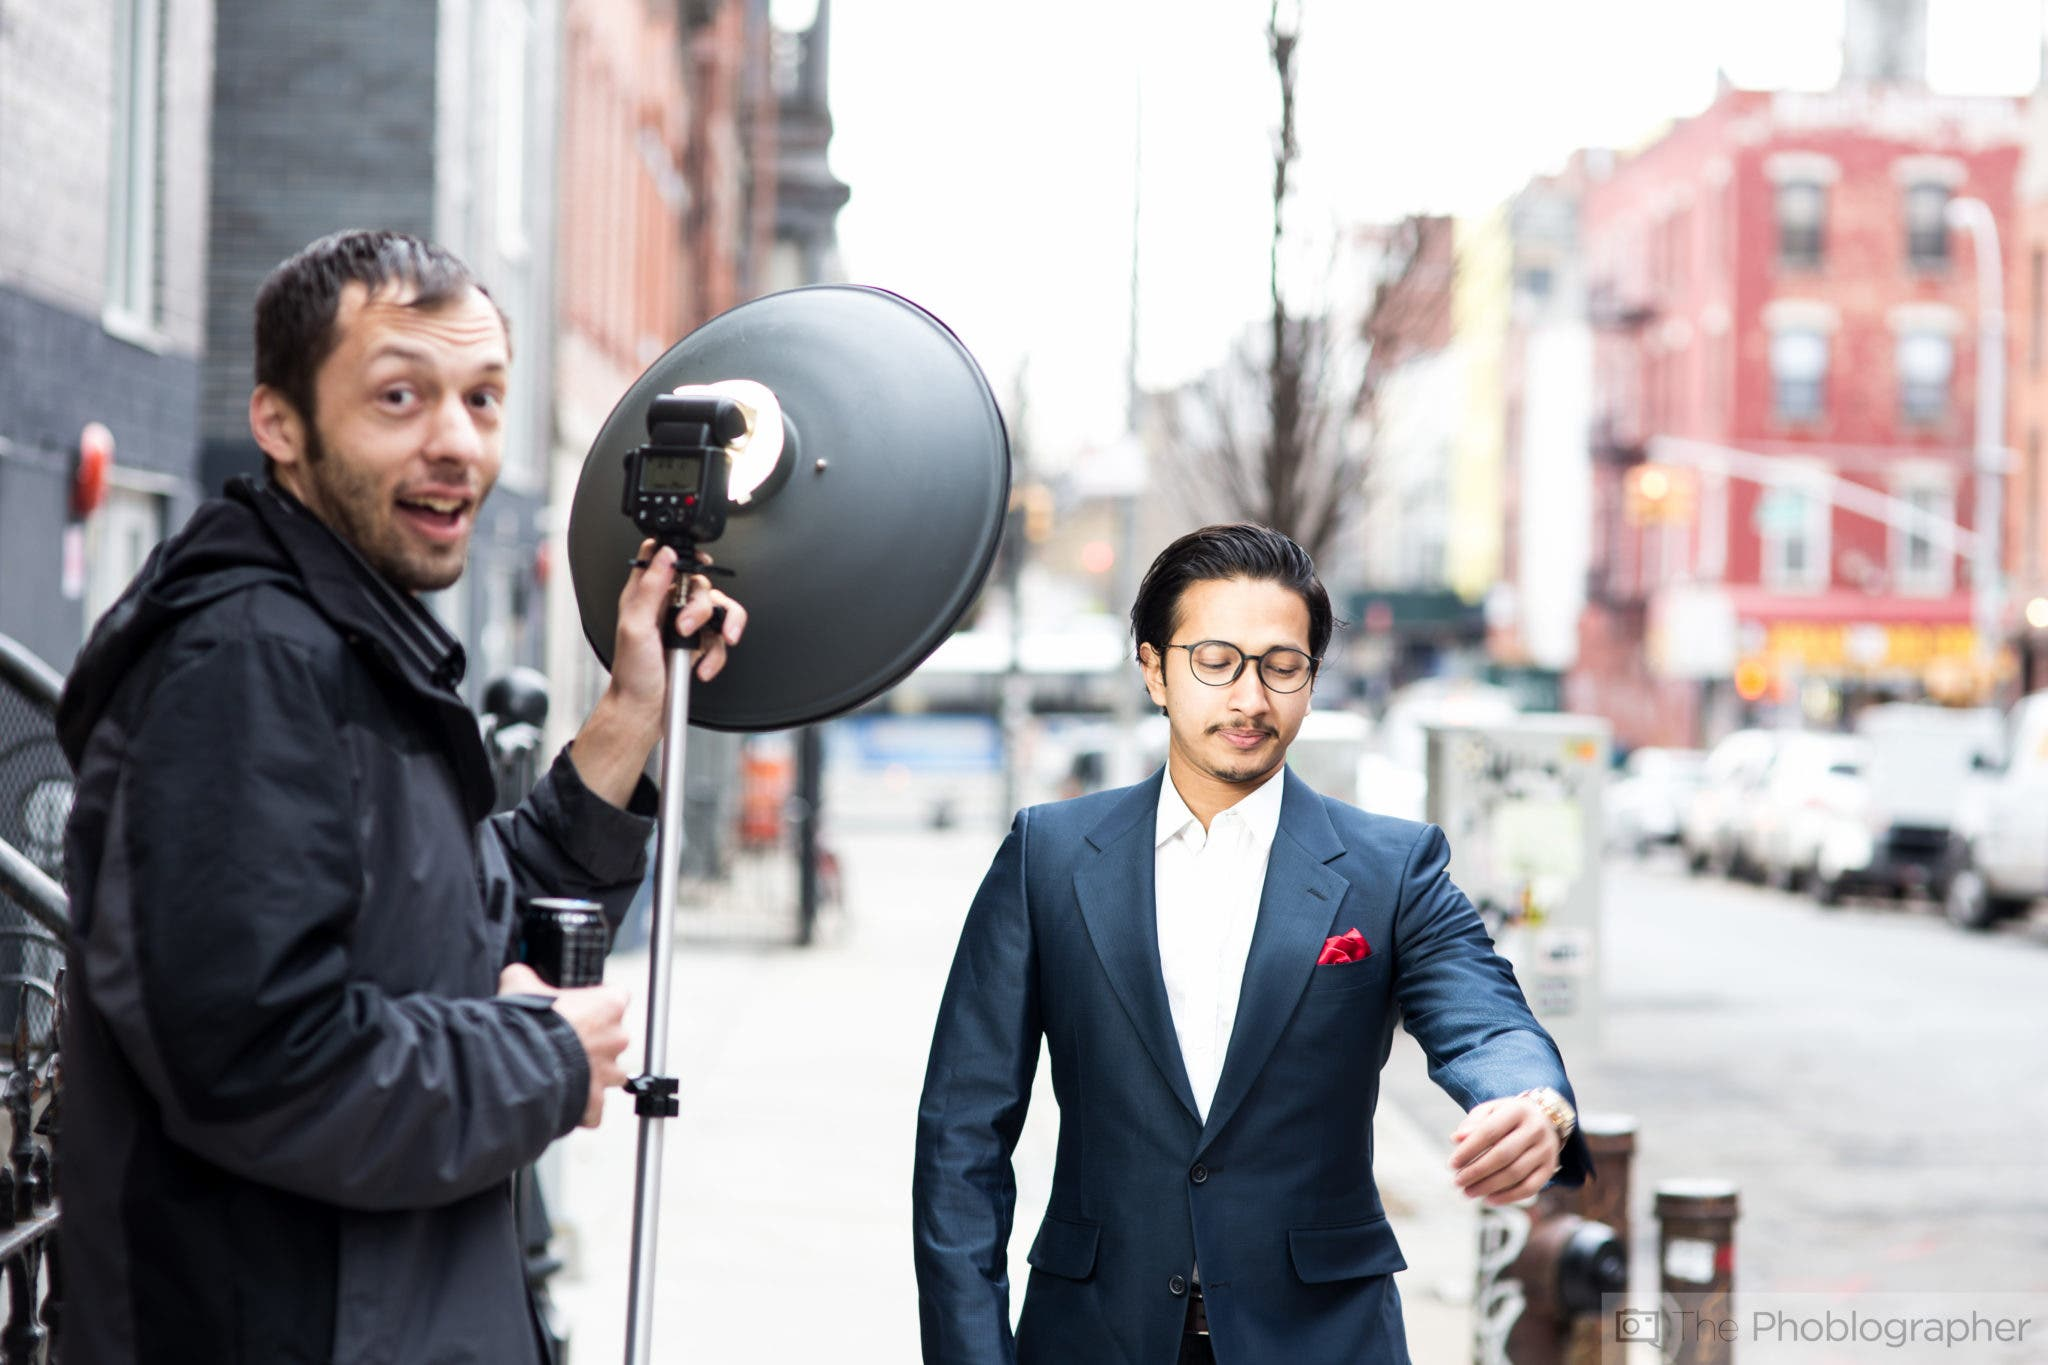 Lighting Basics How To Light Portraits With A Beauty Dish Diagram Chris Gampat The Phoblographer Flashpoint Zoom Li On Review Photos 2 Of 4 Dishes